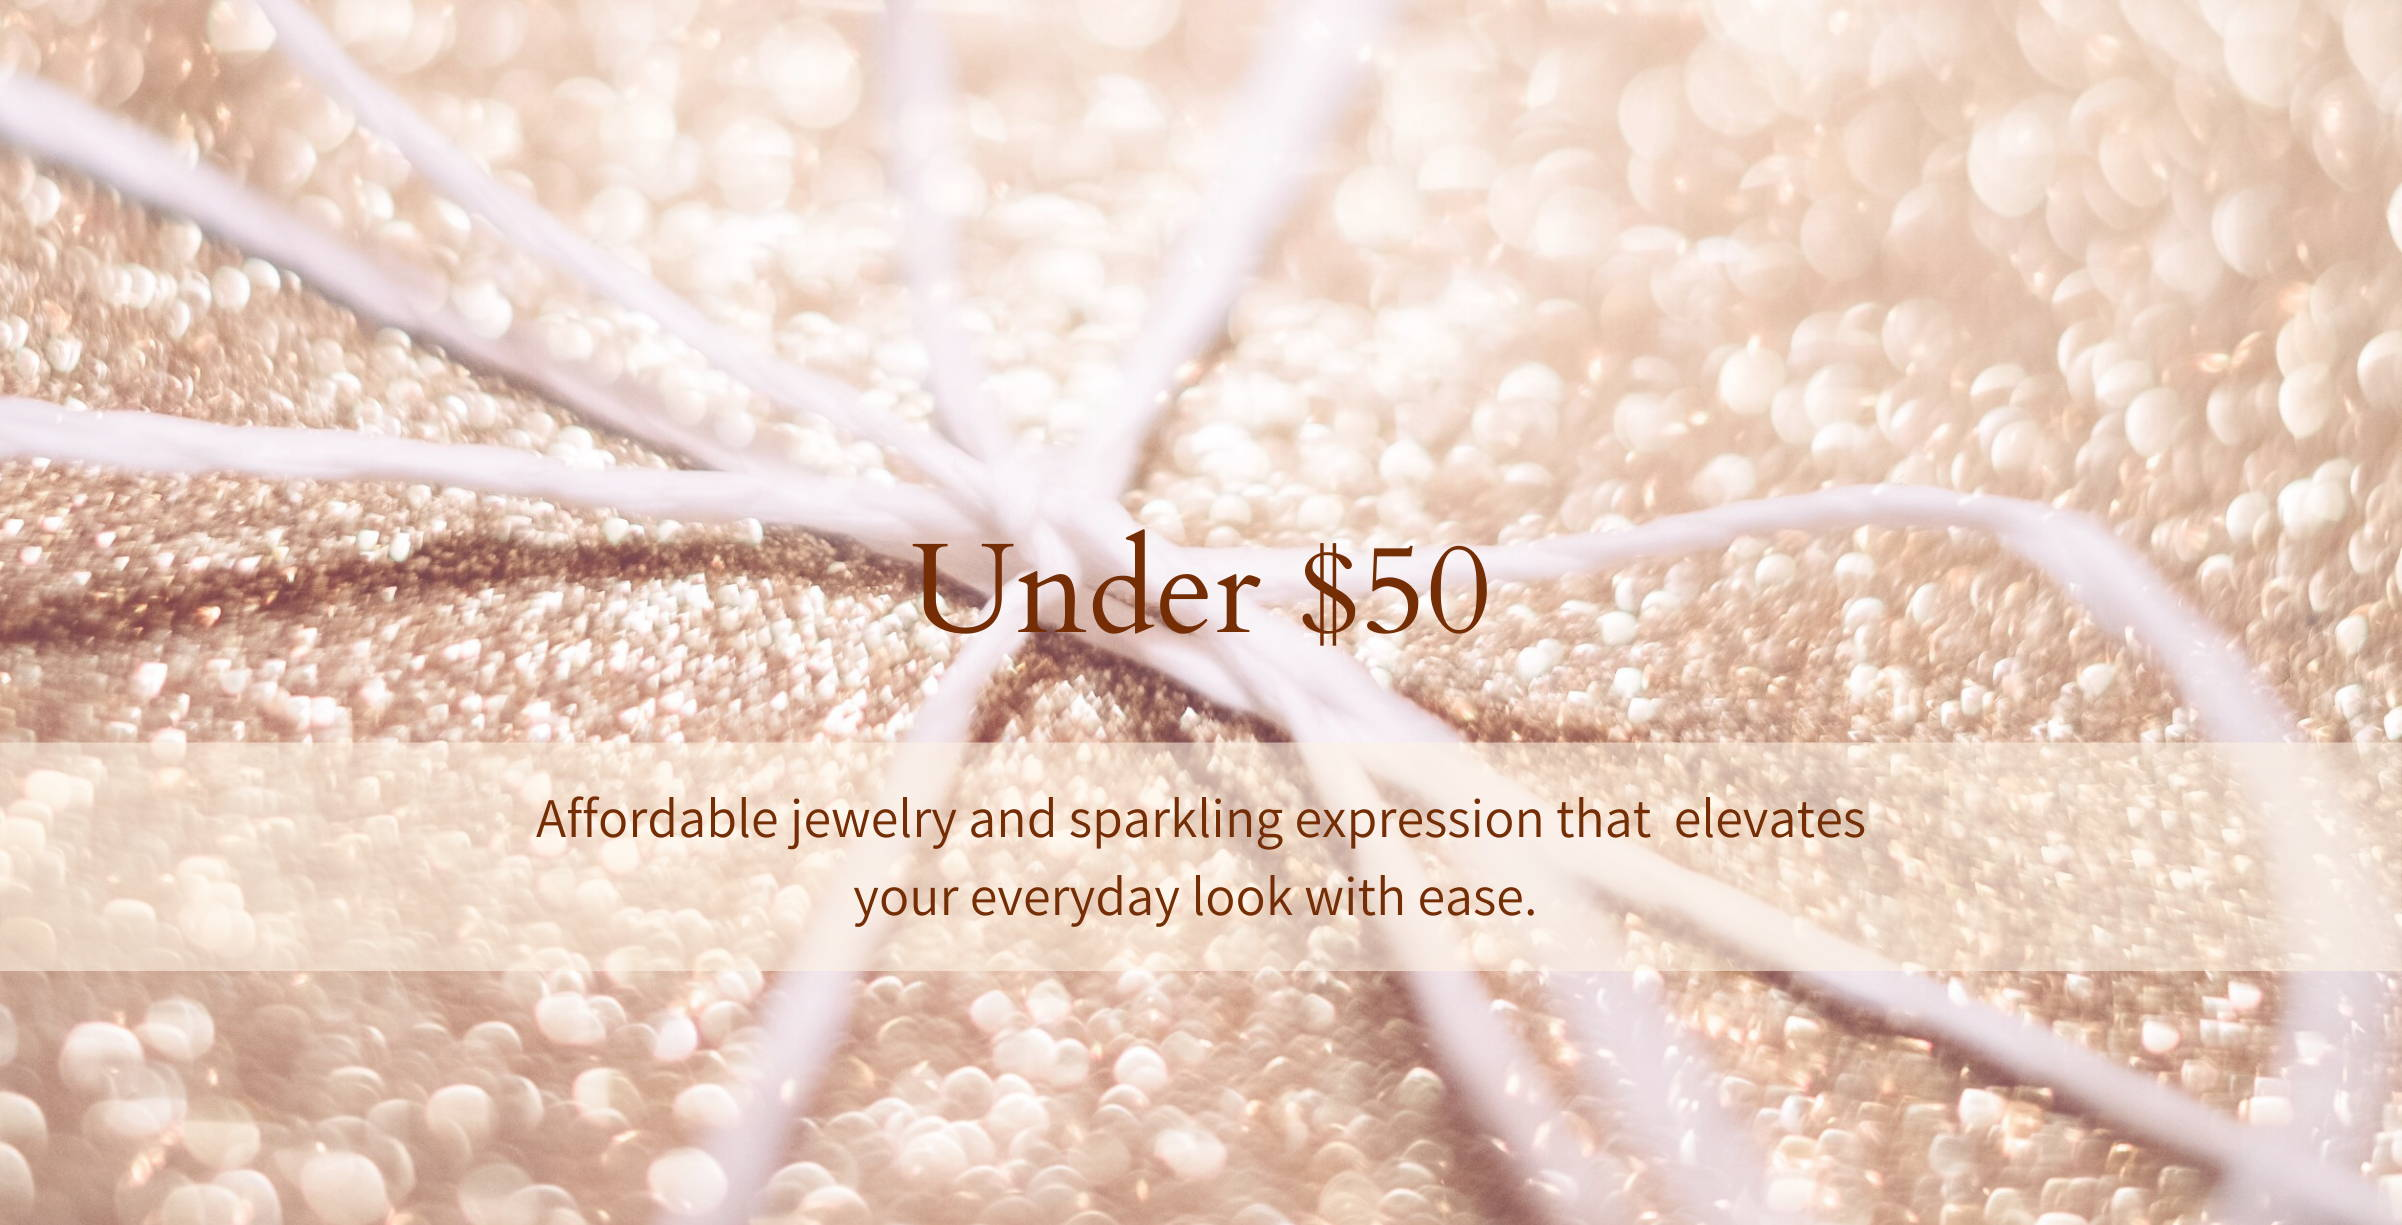 Sol-de-Miel Unique Artisan Jewelry Under $50 Collection